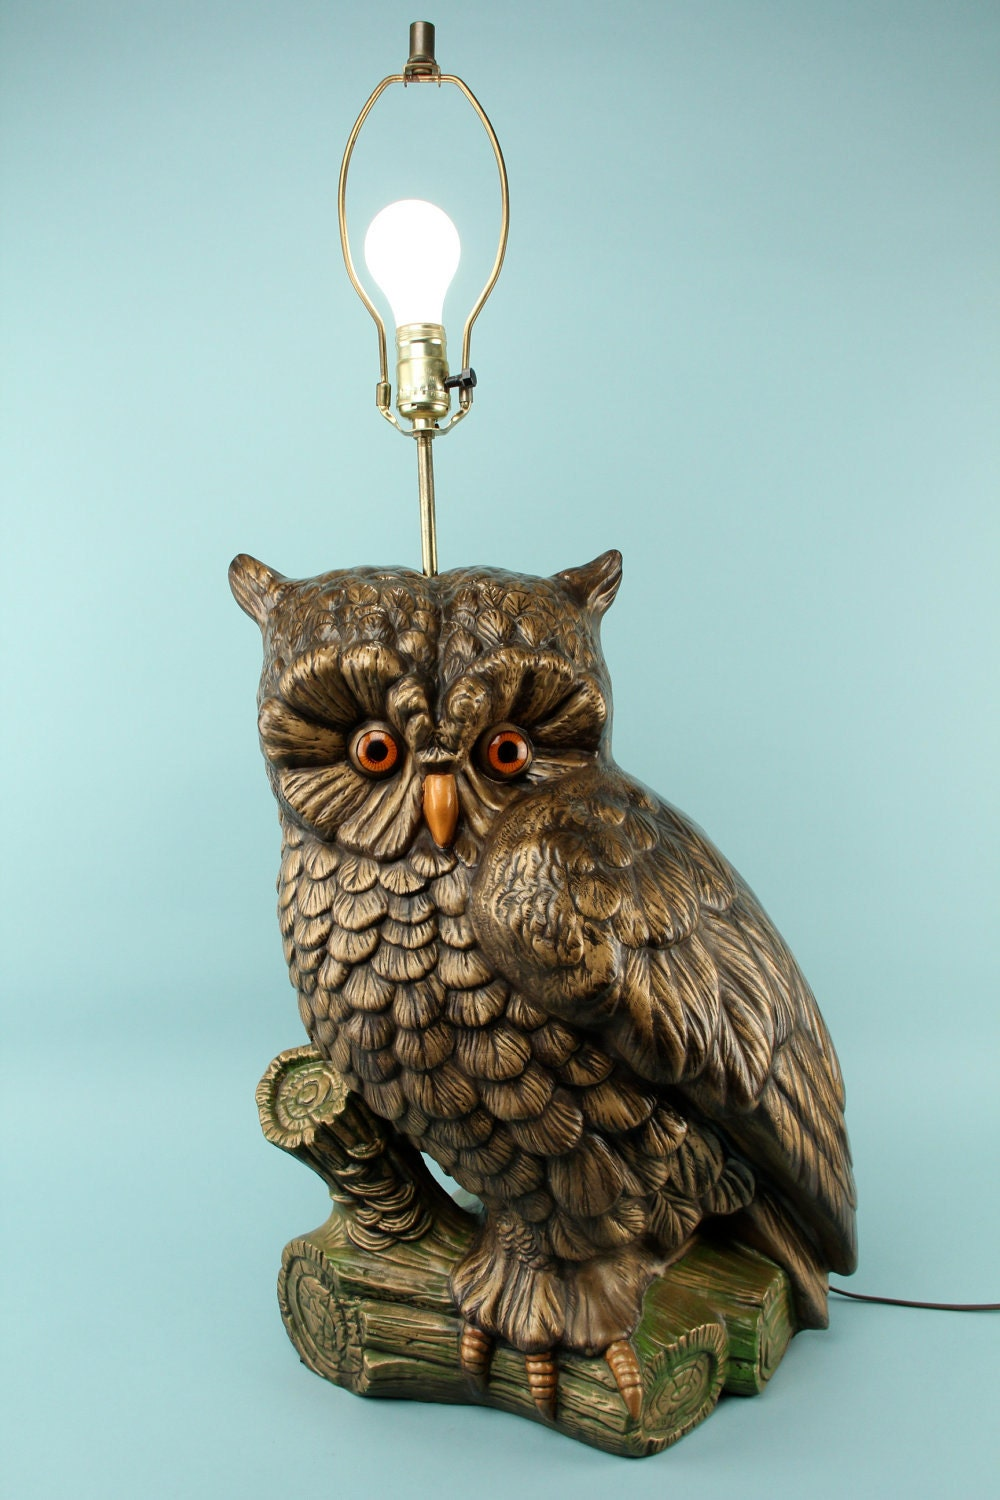 Vintage 1970s Gigantic Owl Lamp Huge Ginormous By